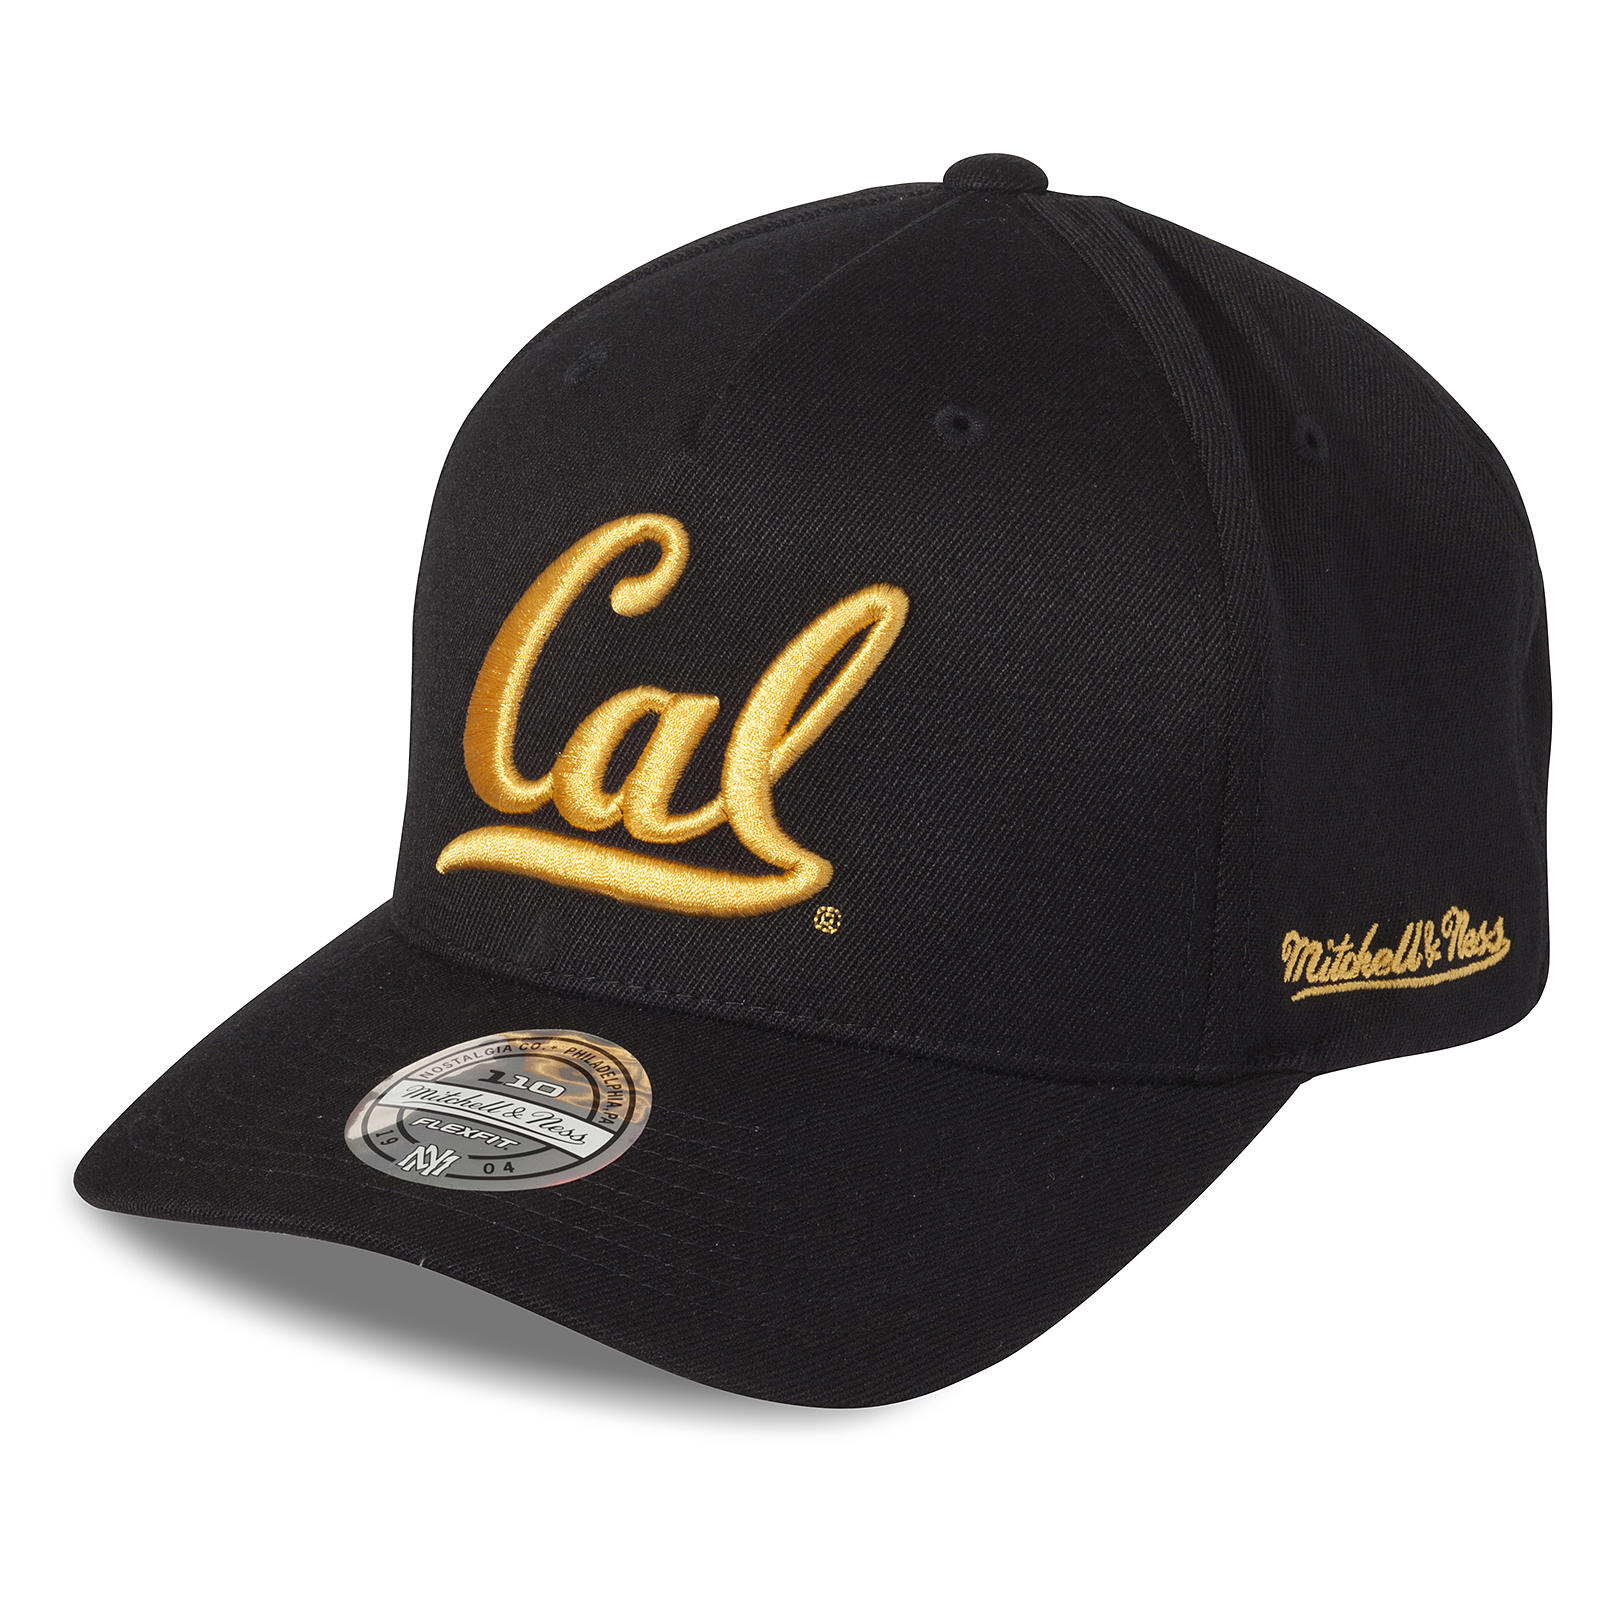 8d6cef1ebe17a Eazy Snapback University of California